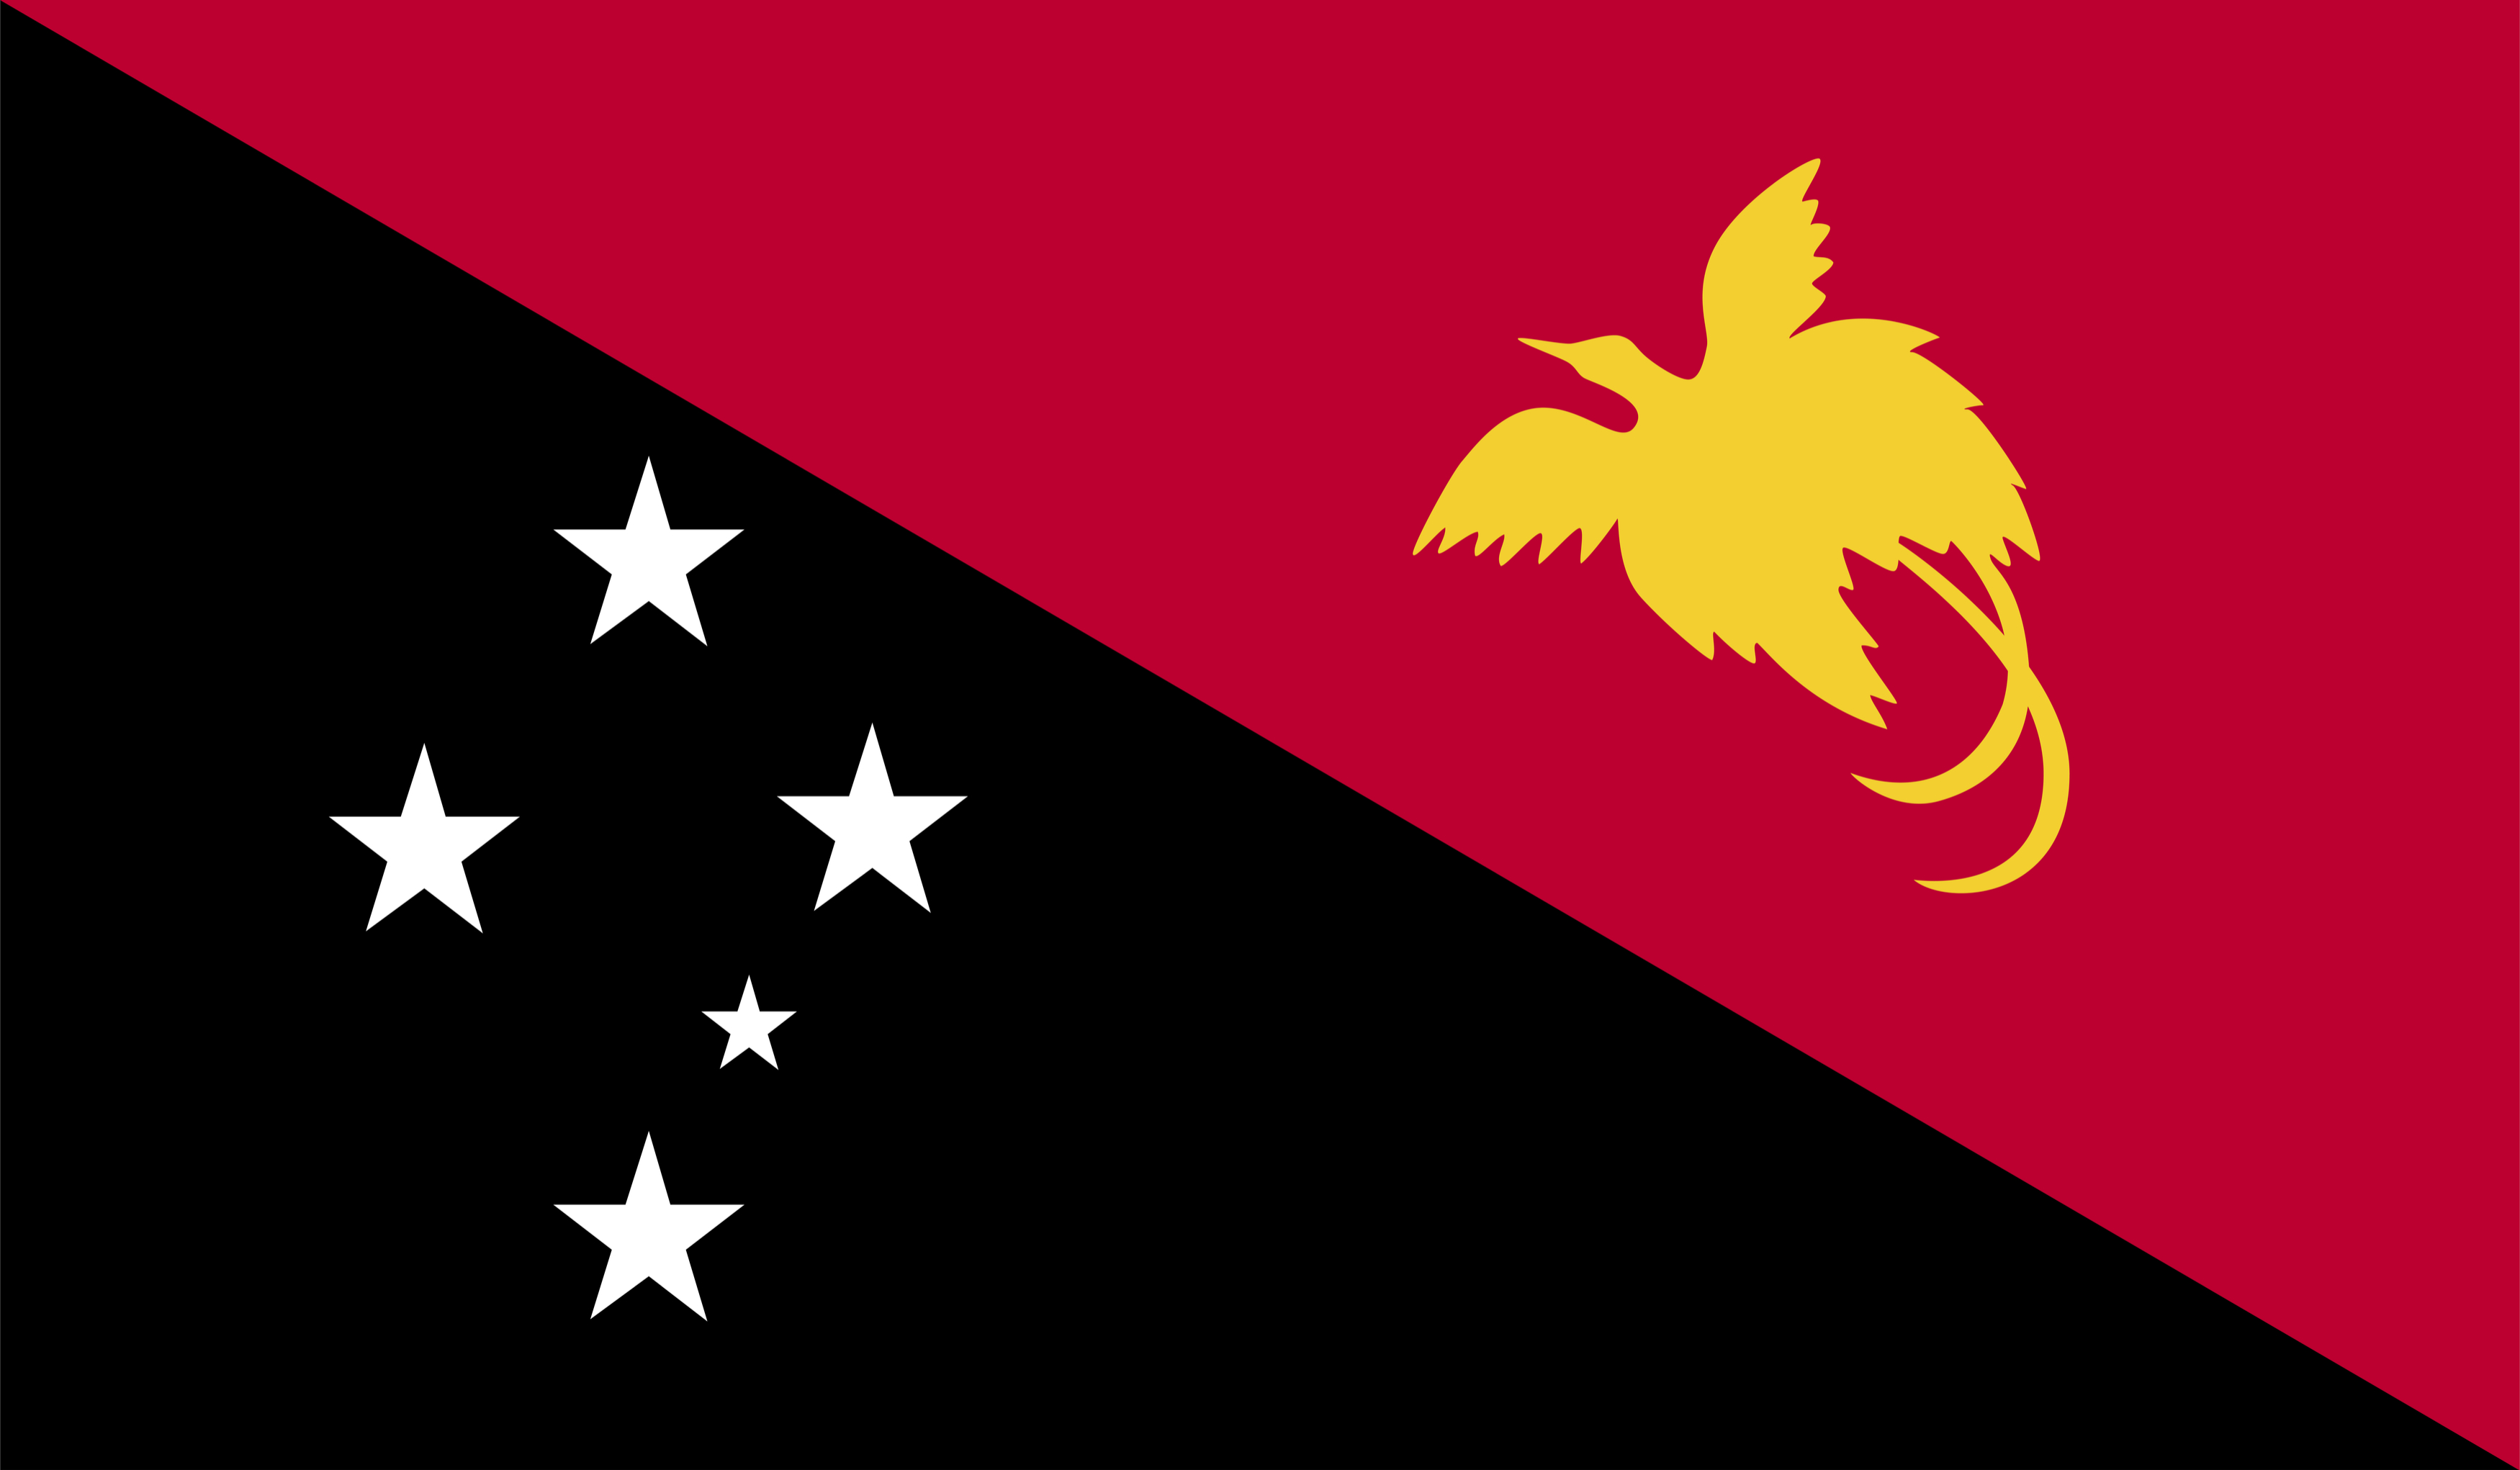 The flag of Papua New Guinea features the Raggiana bird-of-paradise and the Southern Cross constellation.